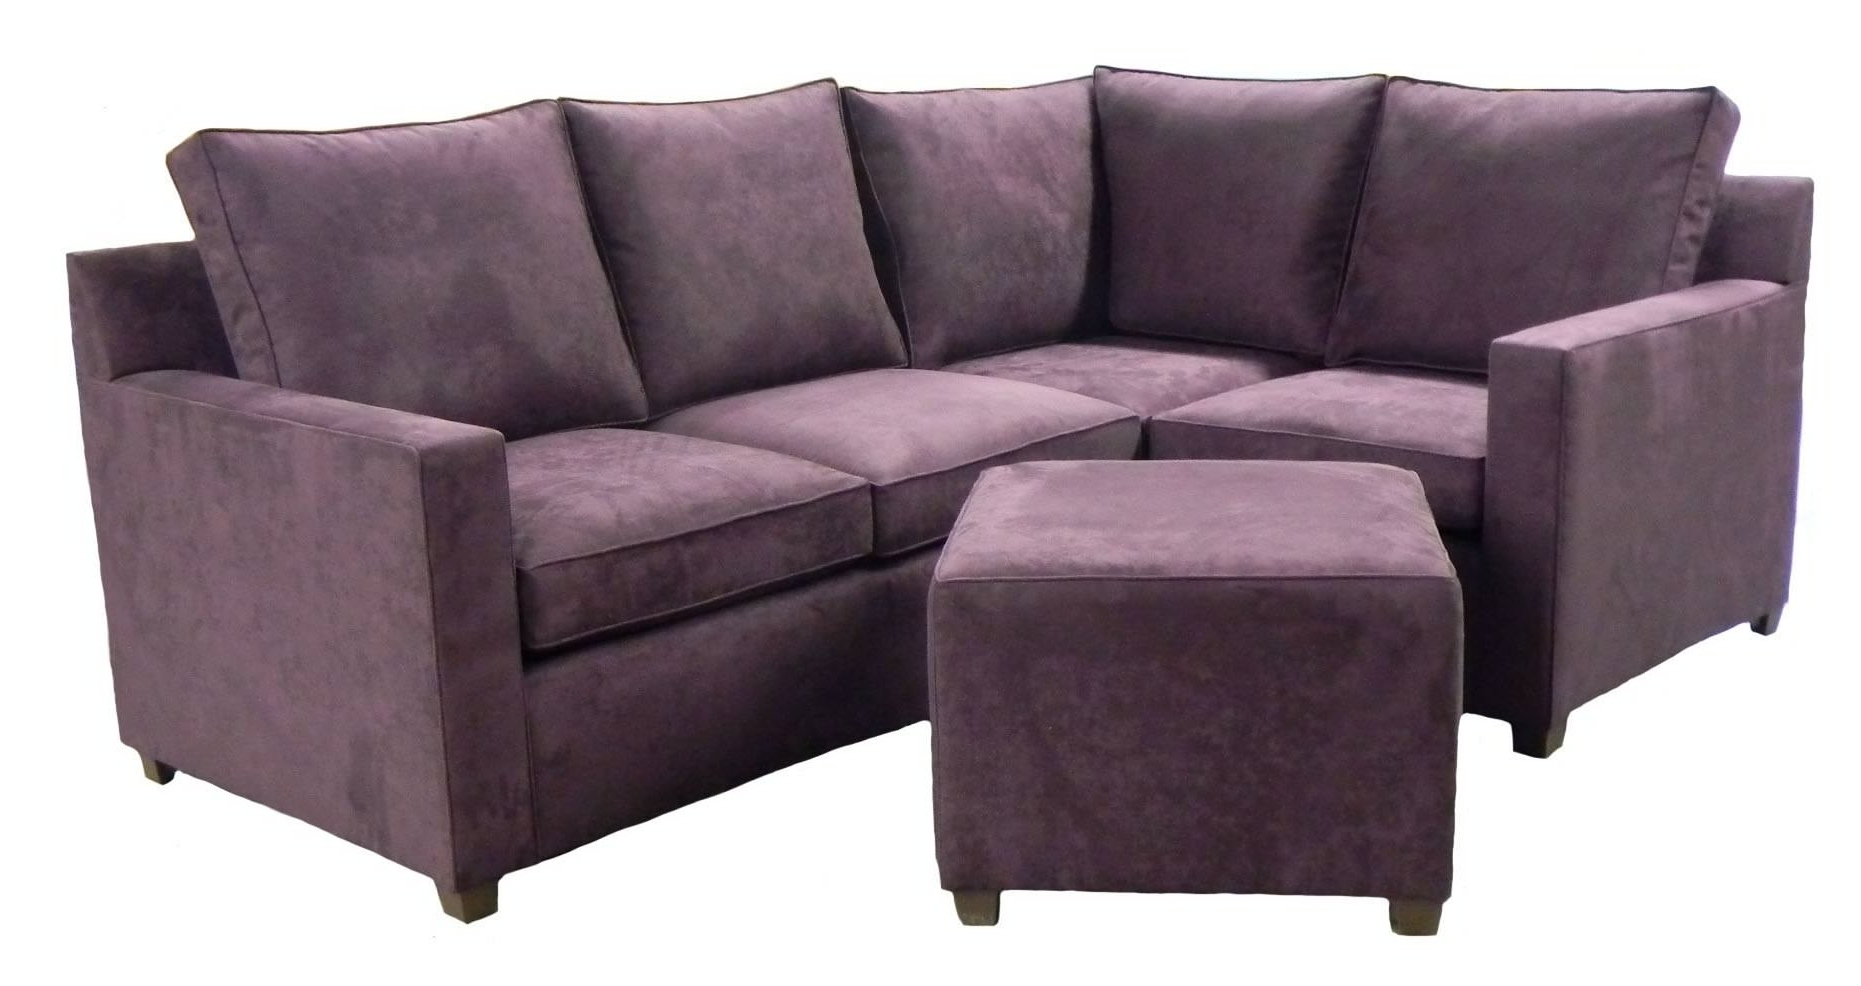 Best And Newest Apartment Size Sofas For Sectional Sofa Design: Apartment Size Sectional Sofa Bed Chaise (View 10 of 20)